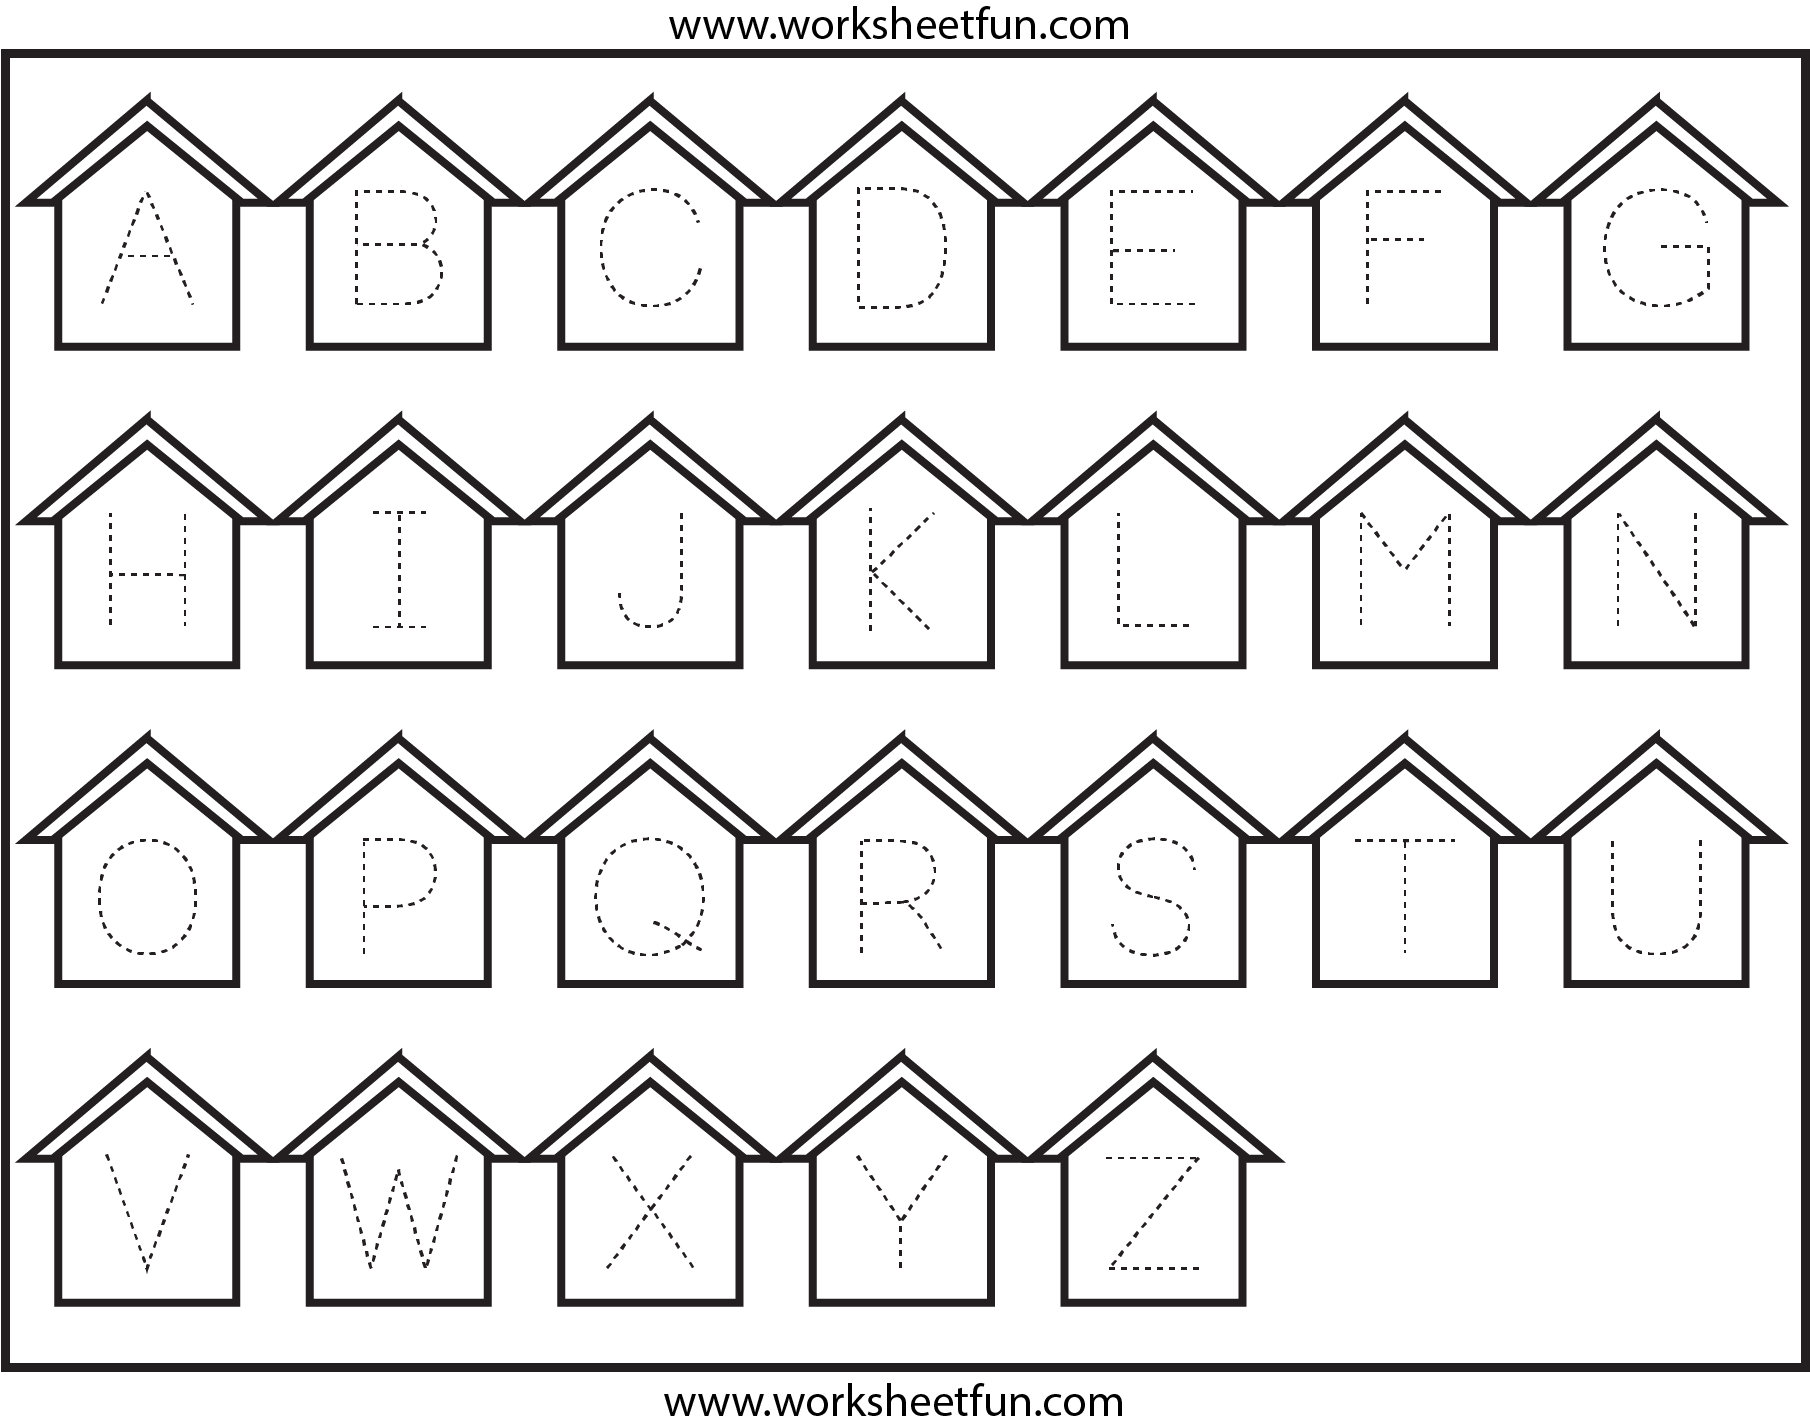 Worksheets Tracing The Alphabet Worksheets For Kindergarten letter tracing worksheets for kindergarten alphabet printables kids activity shelter alphabet